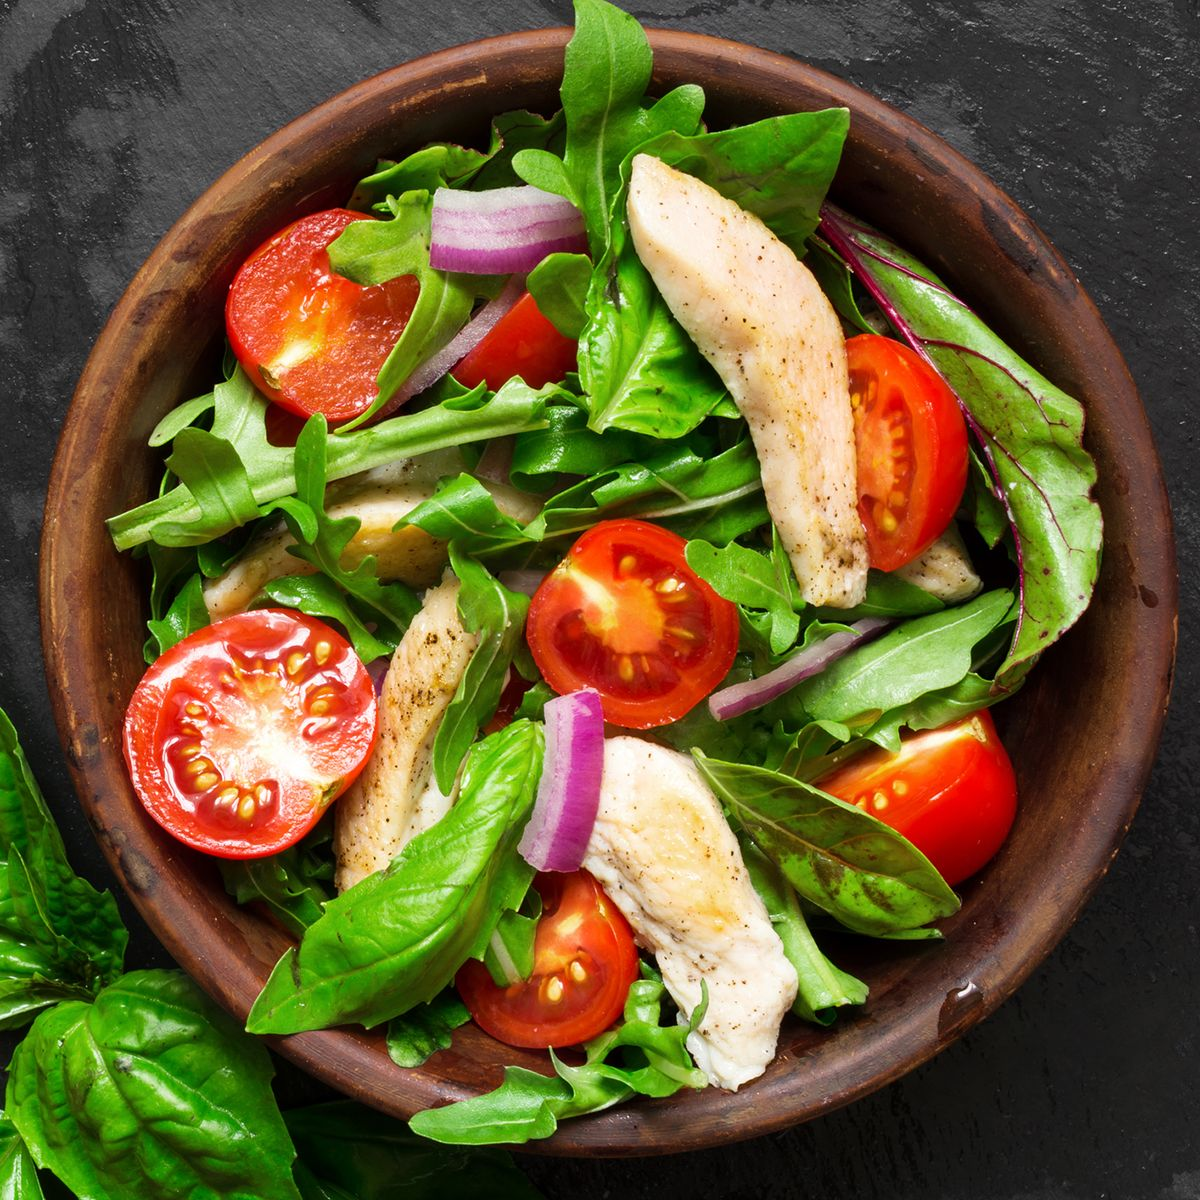 Fresh salad with chicken breast, arugula, basil and tomato over dark stone background